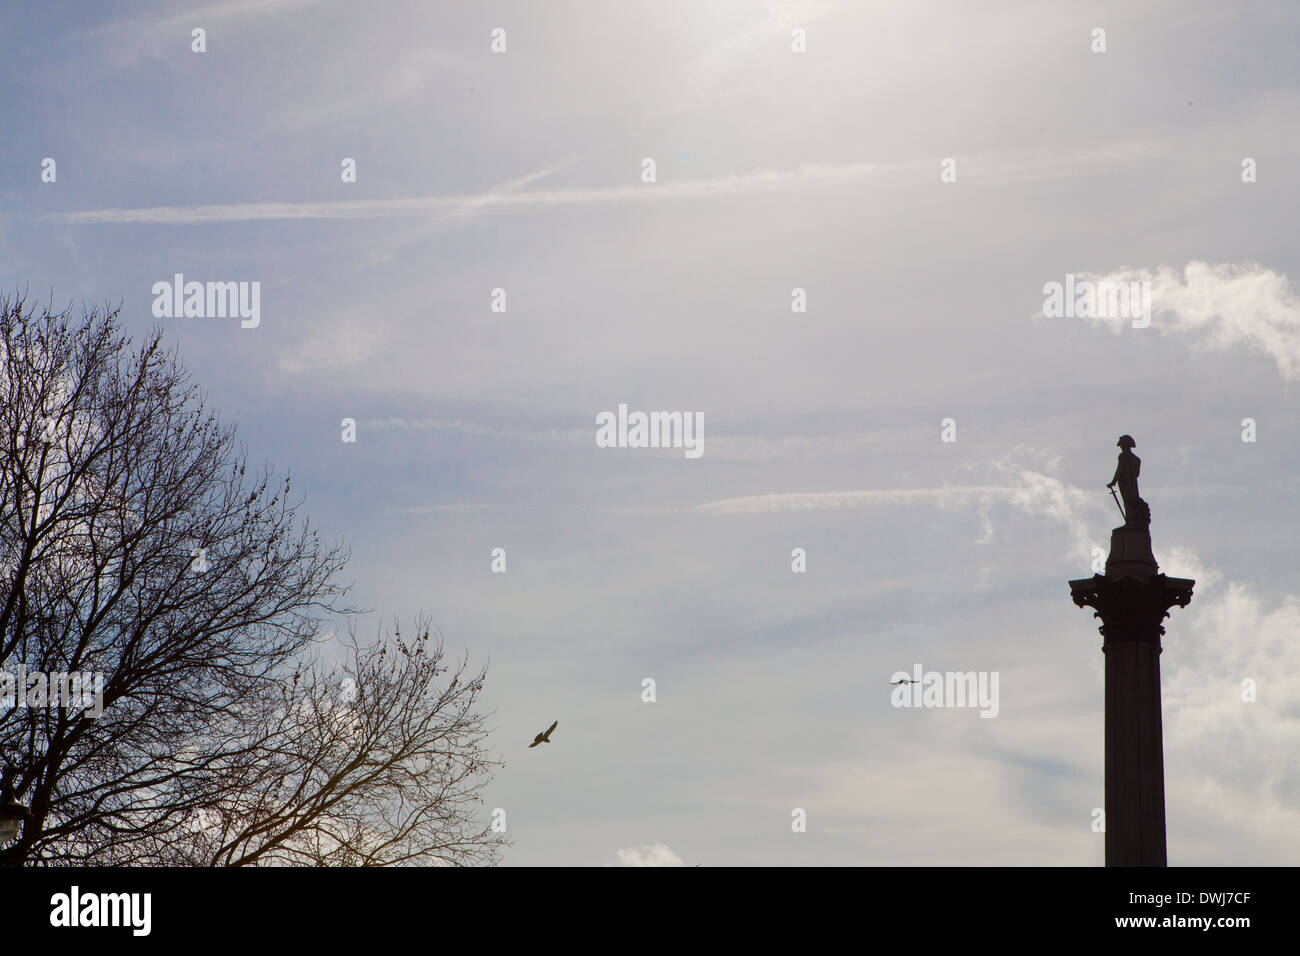 a Skyline of Nelsons Column with 2 pigeons in flight. Stock Photo